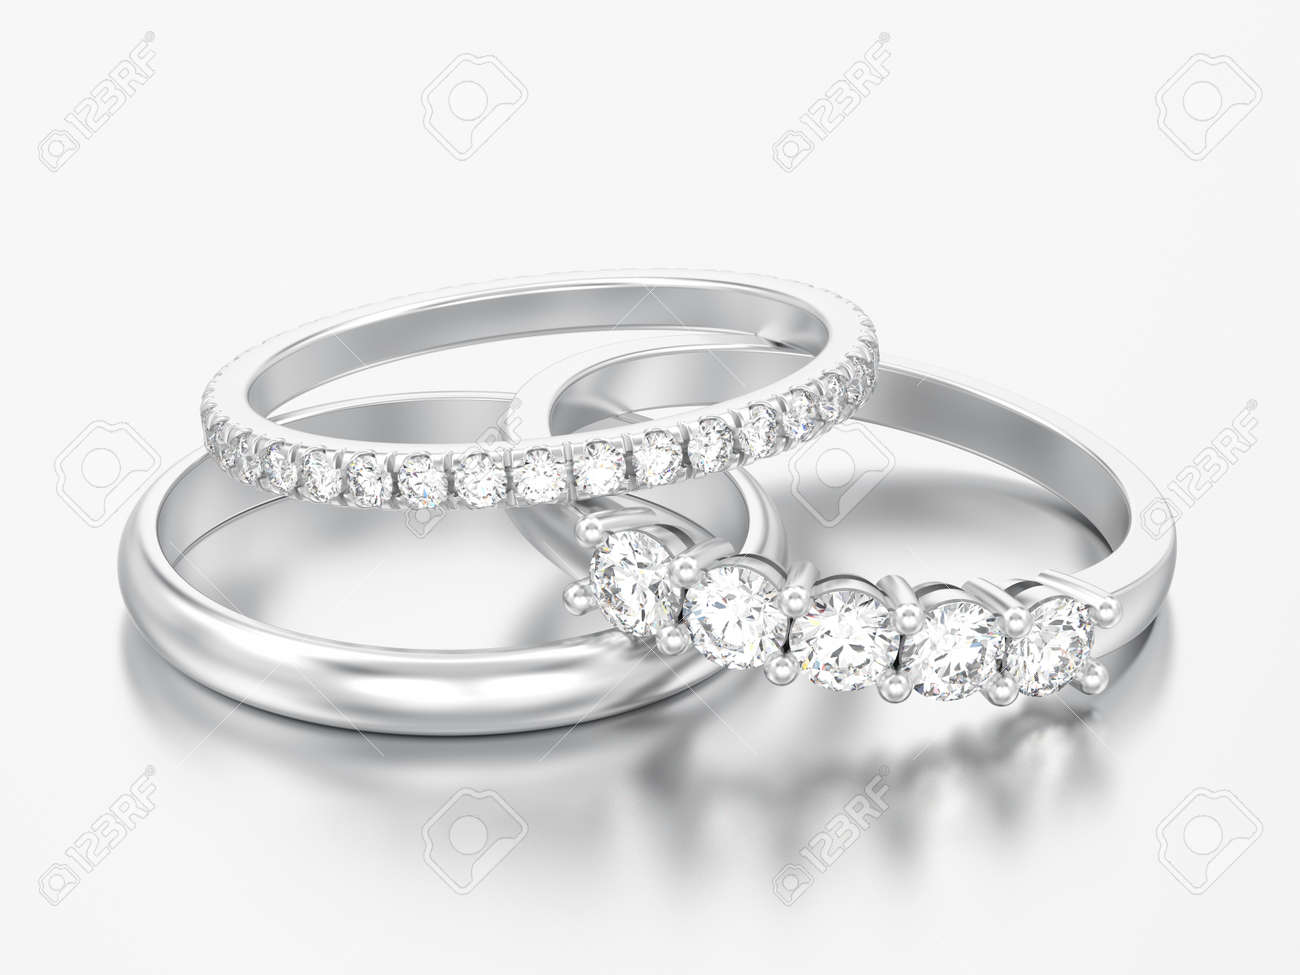 3D illustration three different white gold or silver diamonds rings on a grey background - 103573253